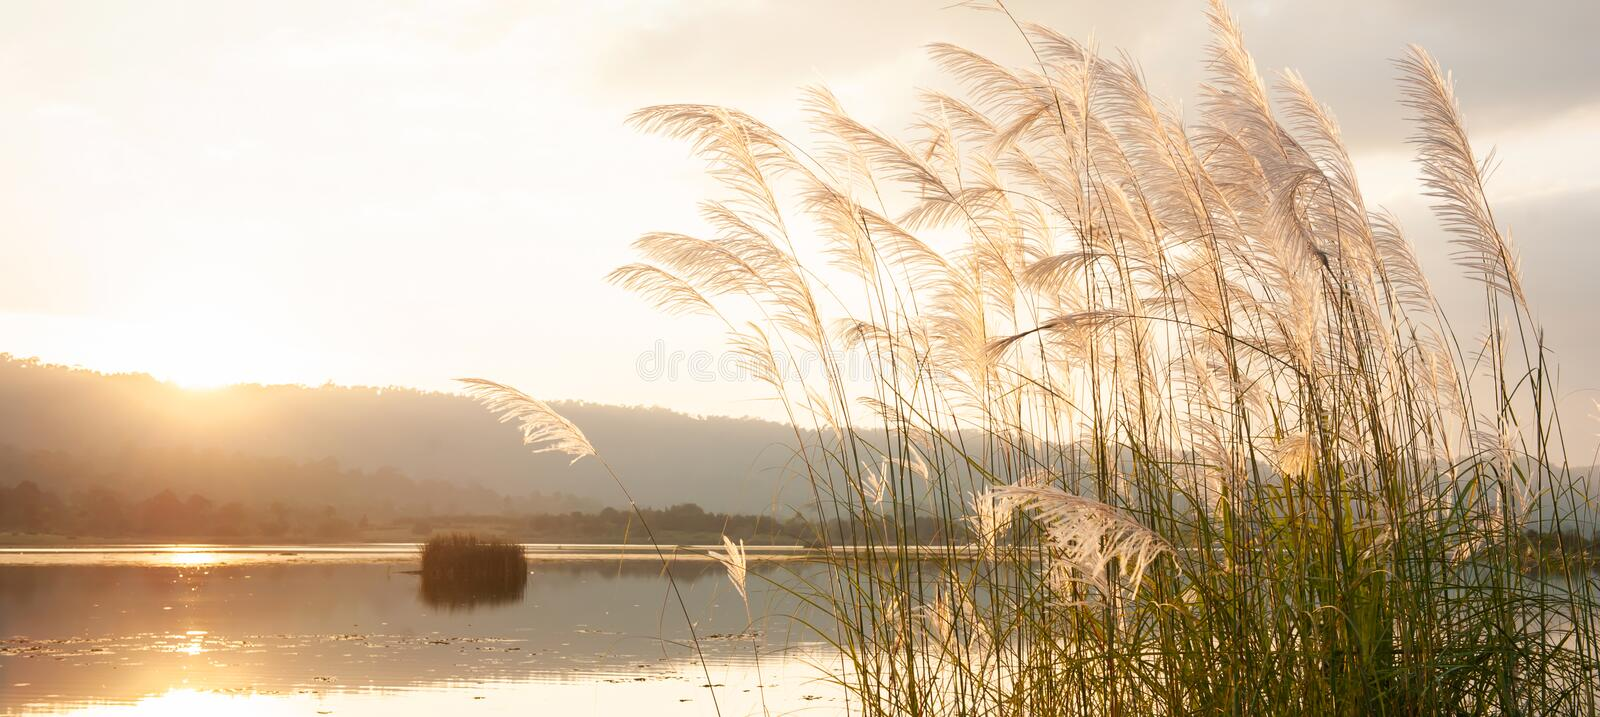 A tranquil sunset lake with reed flowers. Swinging in the wind, glowing sun setting over a mountain range in backgrounds royalty free stock photo